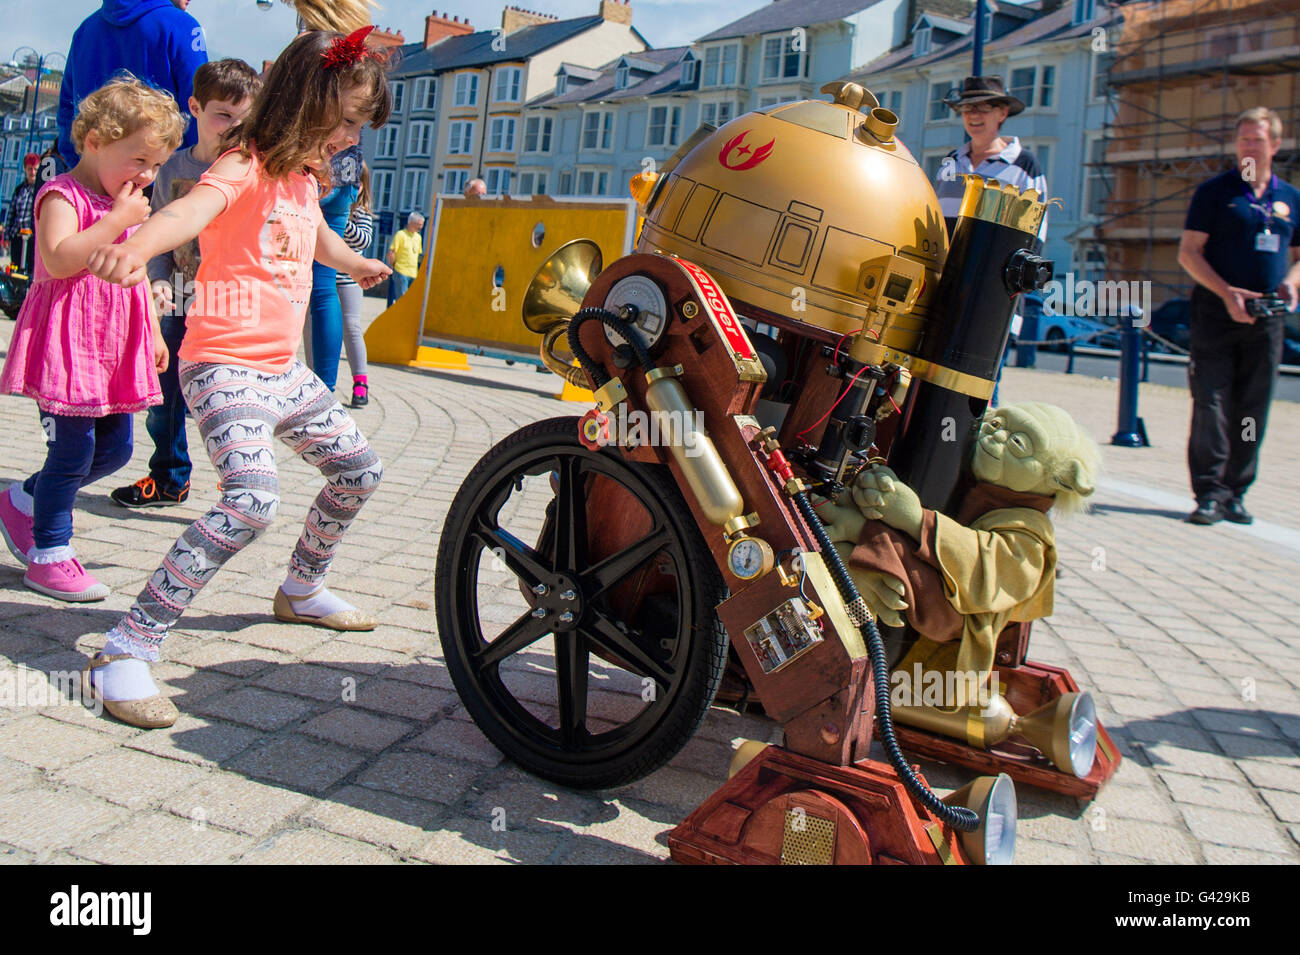 Aberystwyth Wales UK, Saturday 18 June 2016 Children interacting with a 'steam punk RD-D2' replica robot - Stock Image